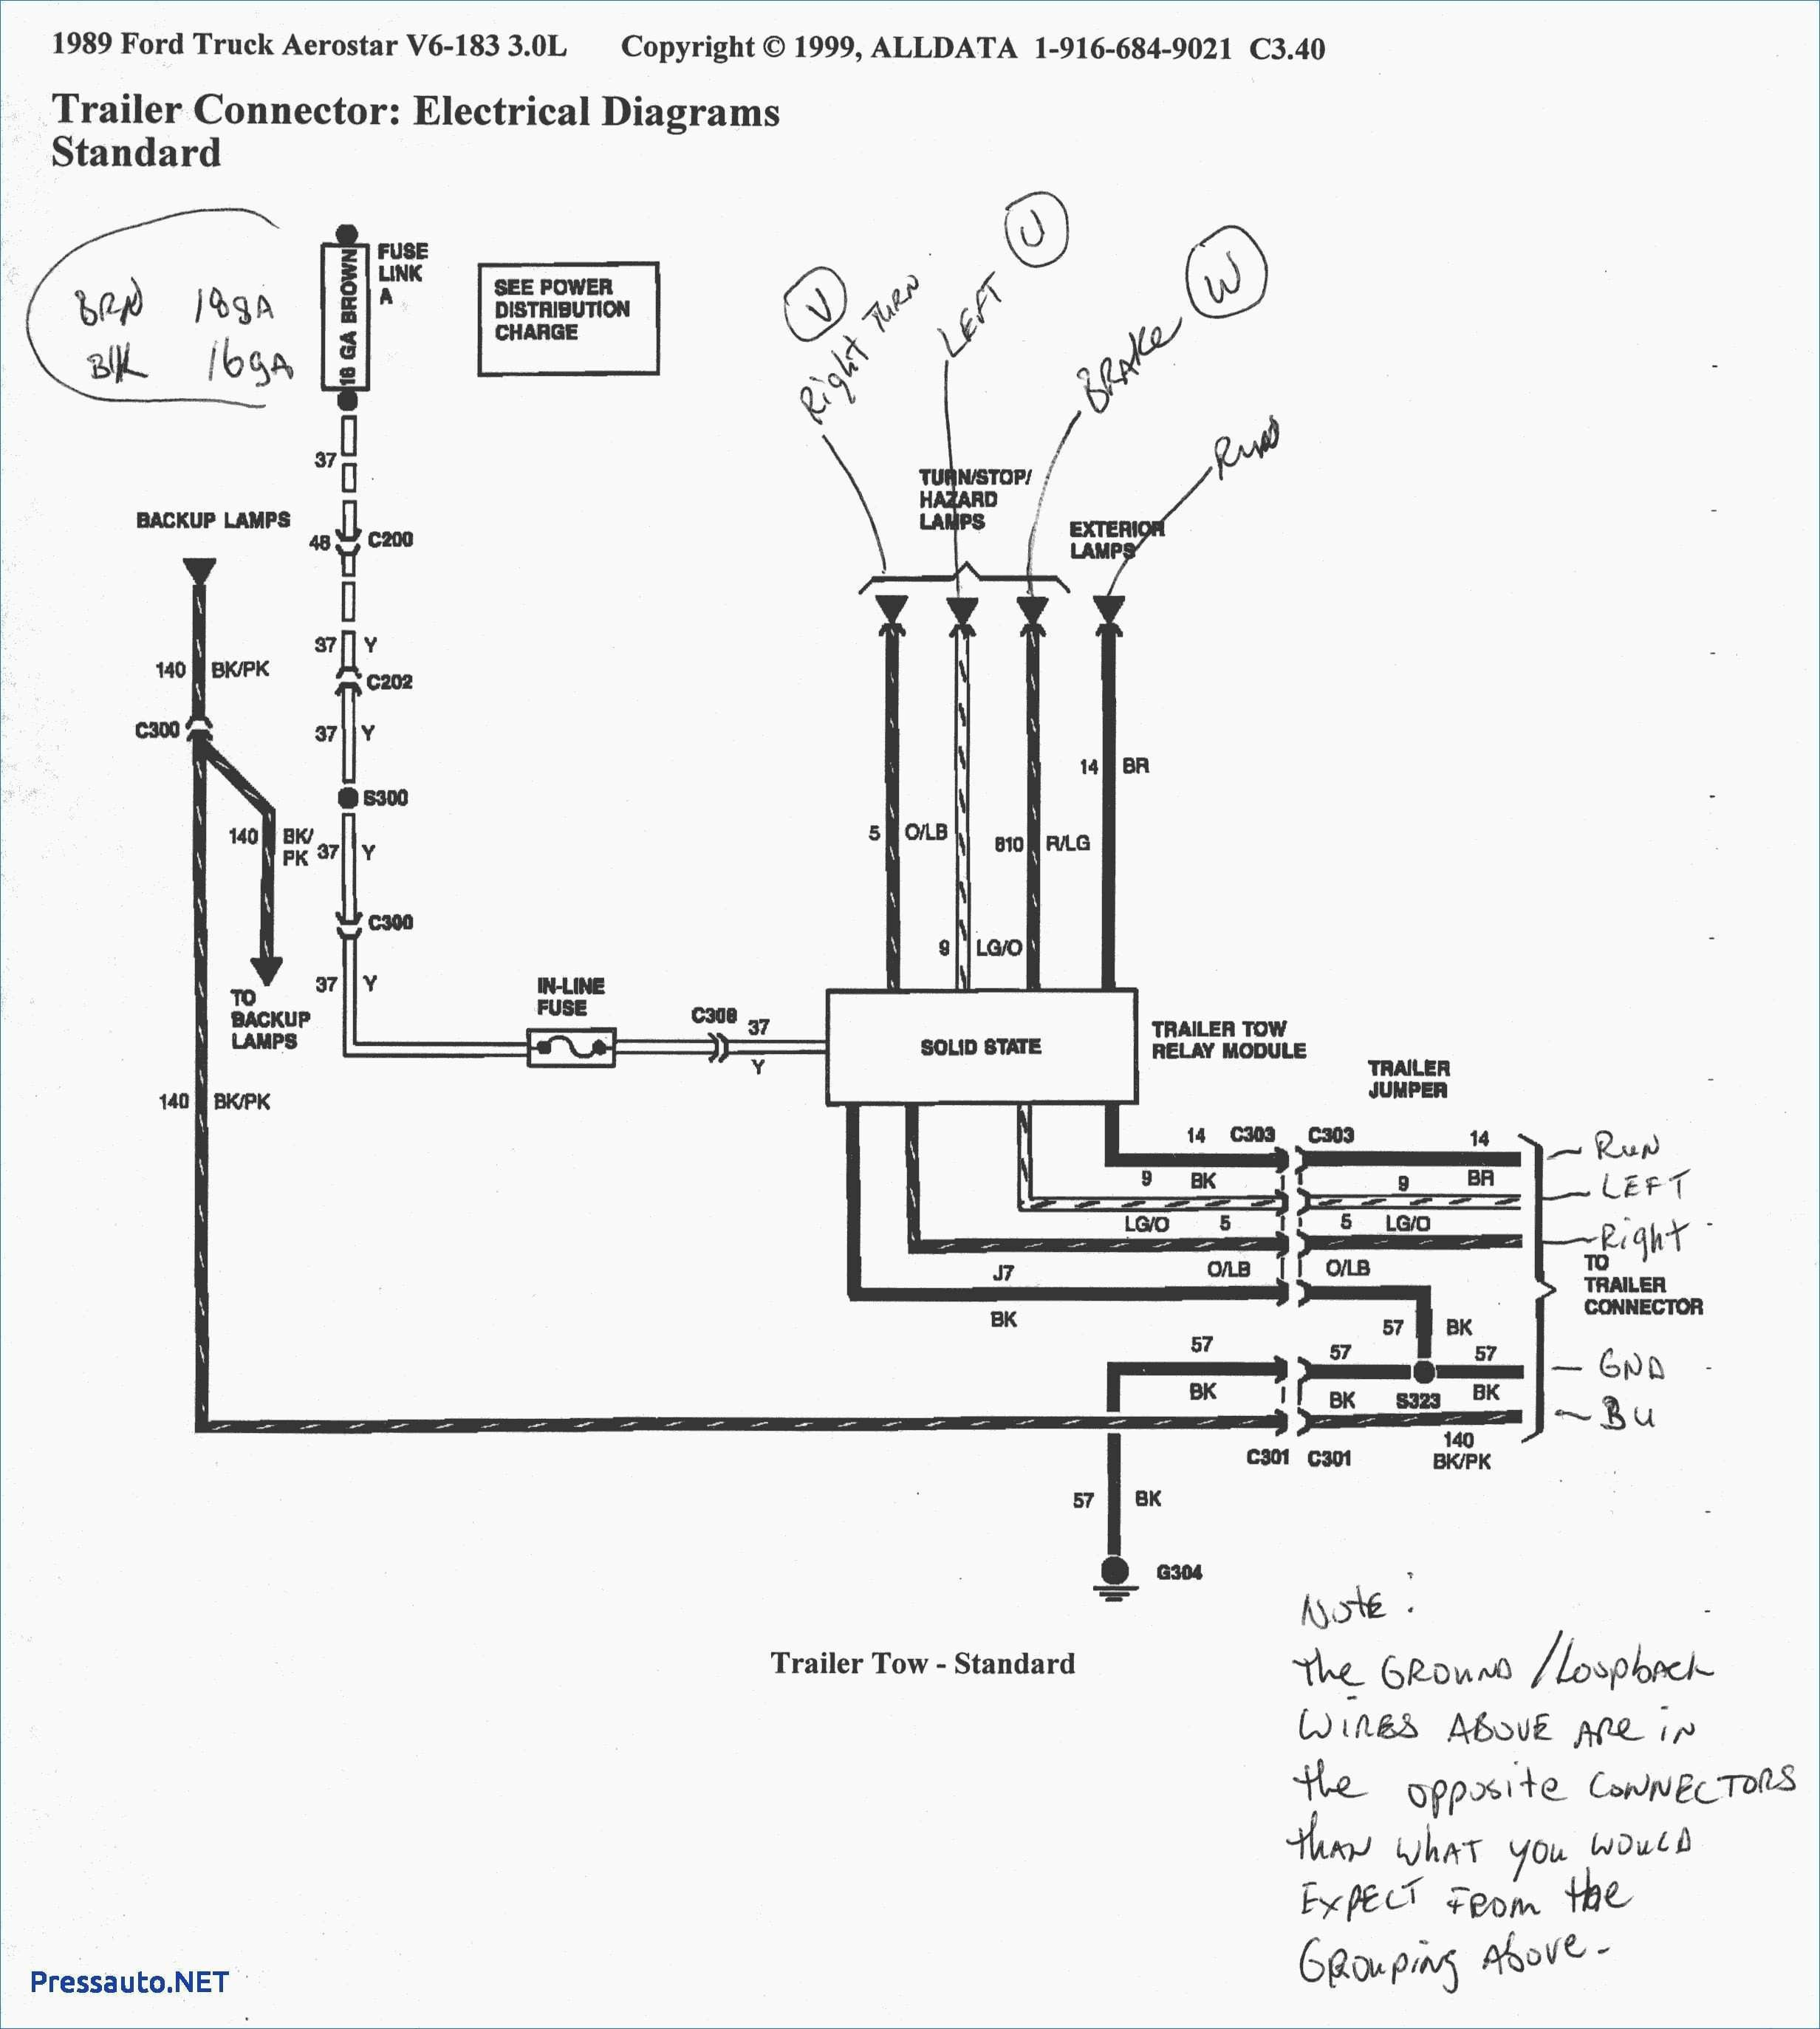 Corn Pro Wiring Diagram | Manual E-Books - Corn Pro Trailer Wiring Diagram